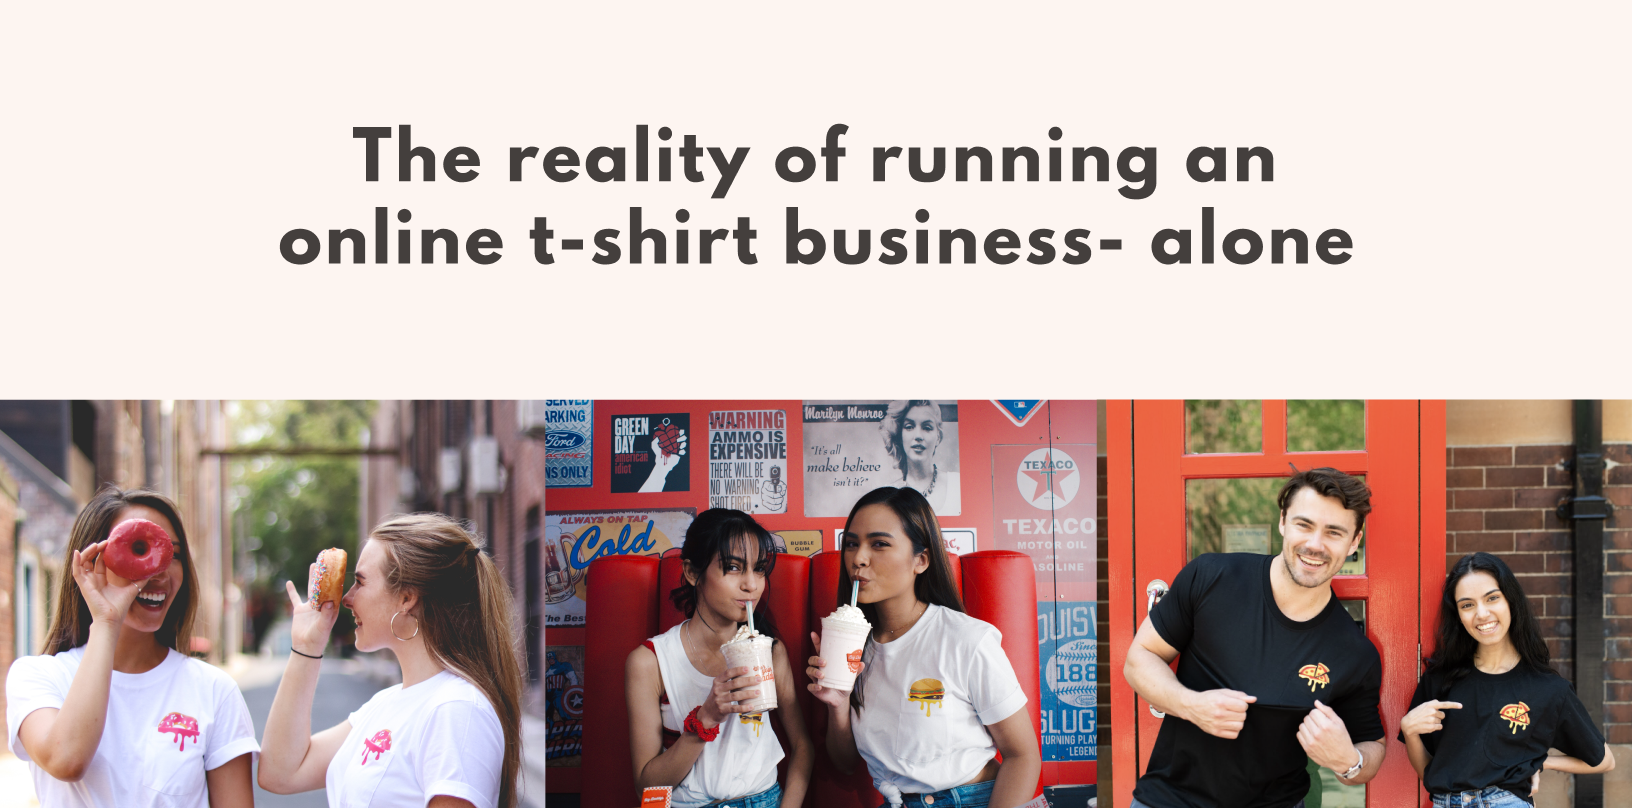 The reality of running an online t-shirt business- alone